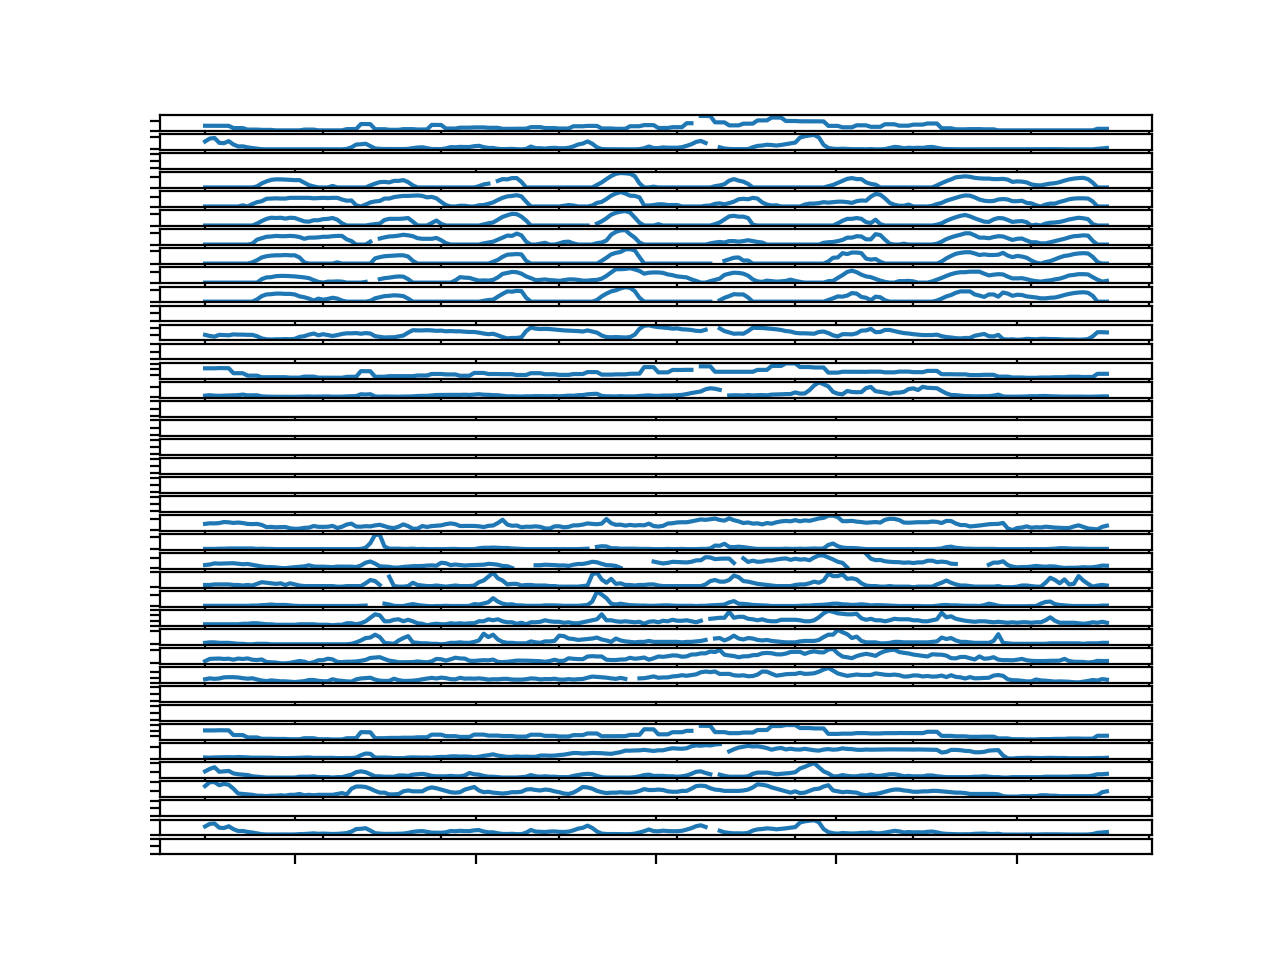 Parallel Time Series Line Plots For All Target Variables for 1 Chunk